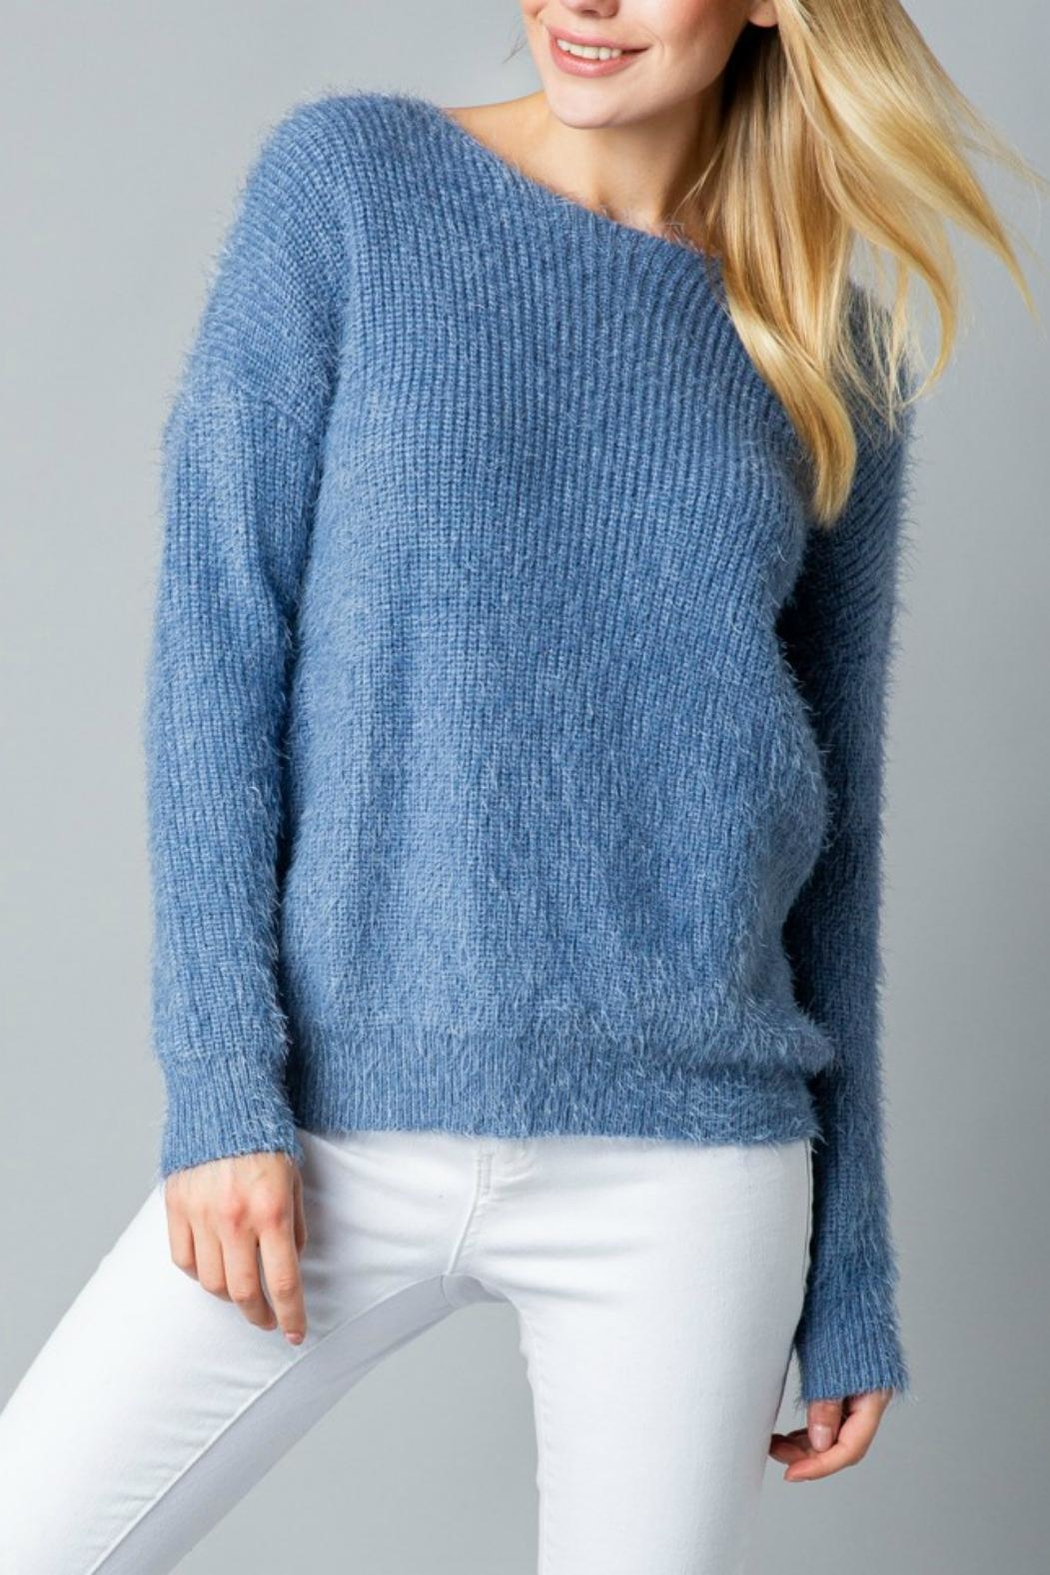 Pretty Little Things Mohair Knotted Sweater - Main Image